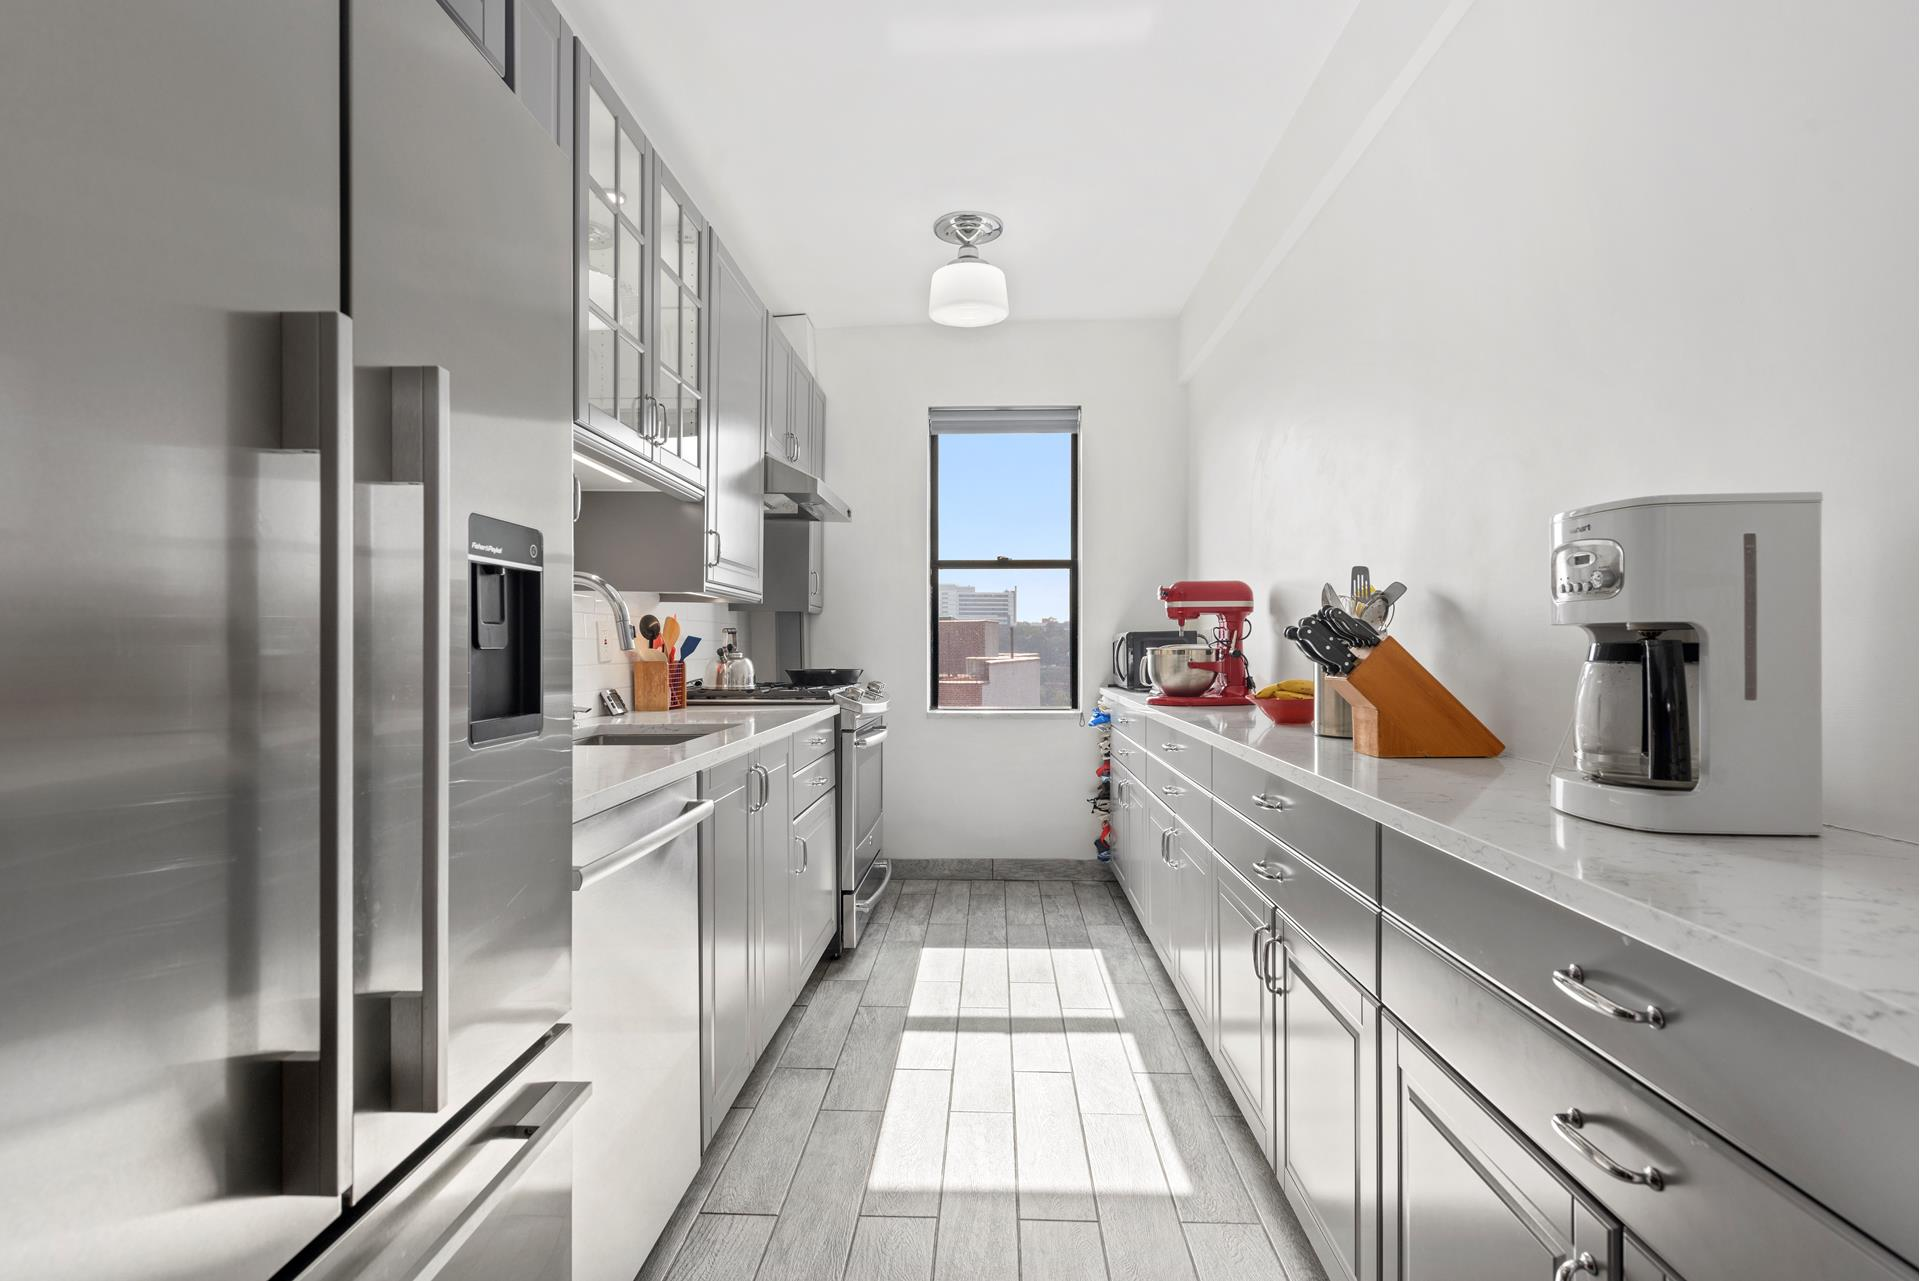 Private showings can be scheduled directly with the listing brokers 7 days a week!    LIVE IN THE HEART OF INWOOD/UPPER MANHATTAN!    This spacious & sun filled one (1) bedroom has been gut renovated/creatively designed while keeping its original pre-war charm/art deco details such as arched walls, beautiful herringbone hardwood floors, high-beamed ceilings & crown moldings throughout. It   includes a custom top of the line windowed kitchen with light grey cabinetry & vintage knobs/pulls, silestone countertops, fisher paykel frigidaire, GE profile gas range, professional stainless steel appliances, deep sink, pull out pantry as well as a bosch   dishwasher. The bathroom has hans grohe shower fixtures, villeroy bosch toilet, robern medicine cabinet, marble tiled floor & a kohler tub.    The apartment also features an elegant entry foyer, custom-made wall-shelving unit, home office area, which overlooks the magnificent/large stepdown sunken living room. Let's not forget tons of large california style closets (4 in total)    Park Terrace Gardens is a well-maintained & financially stable pro-active community complex of ten (10) buildings on 2.67 acres of beautifully landscaped flowering gardens. It was constructed in 1940 of masonry with steel and concrete beams & floors. Each building   has a roof deck terrace with barbeque, private garden, concierge service, bike room & a 24 hour laundry room.    Enjoy living in Inwood/Upper Manhattan where you'll find great restaurants, parks, schools, museums, shopping, health clubs, movie theatres, Columbia's baker athletics complex, Rocco B. Commisso Soccer Stadium, Robert K. Kraft Field, Robertson Field at Satow   Stadium, NewYork-Presbyterian, Isham Park, Inwood Hill Park & Nature Center!    This fabulous property is located on a beautiful tree lined block where residents can enjoy the comfort of a quiet residential street surrounded by the very best services & verdant parkland this city has to offer and so much more!    Park Te